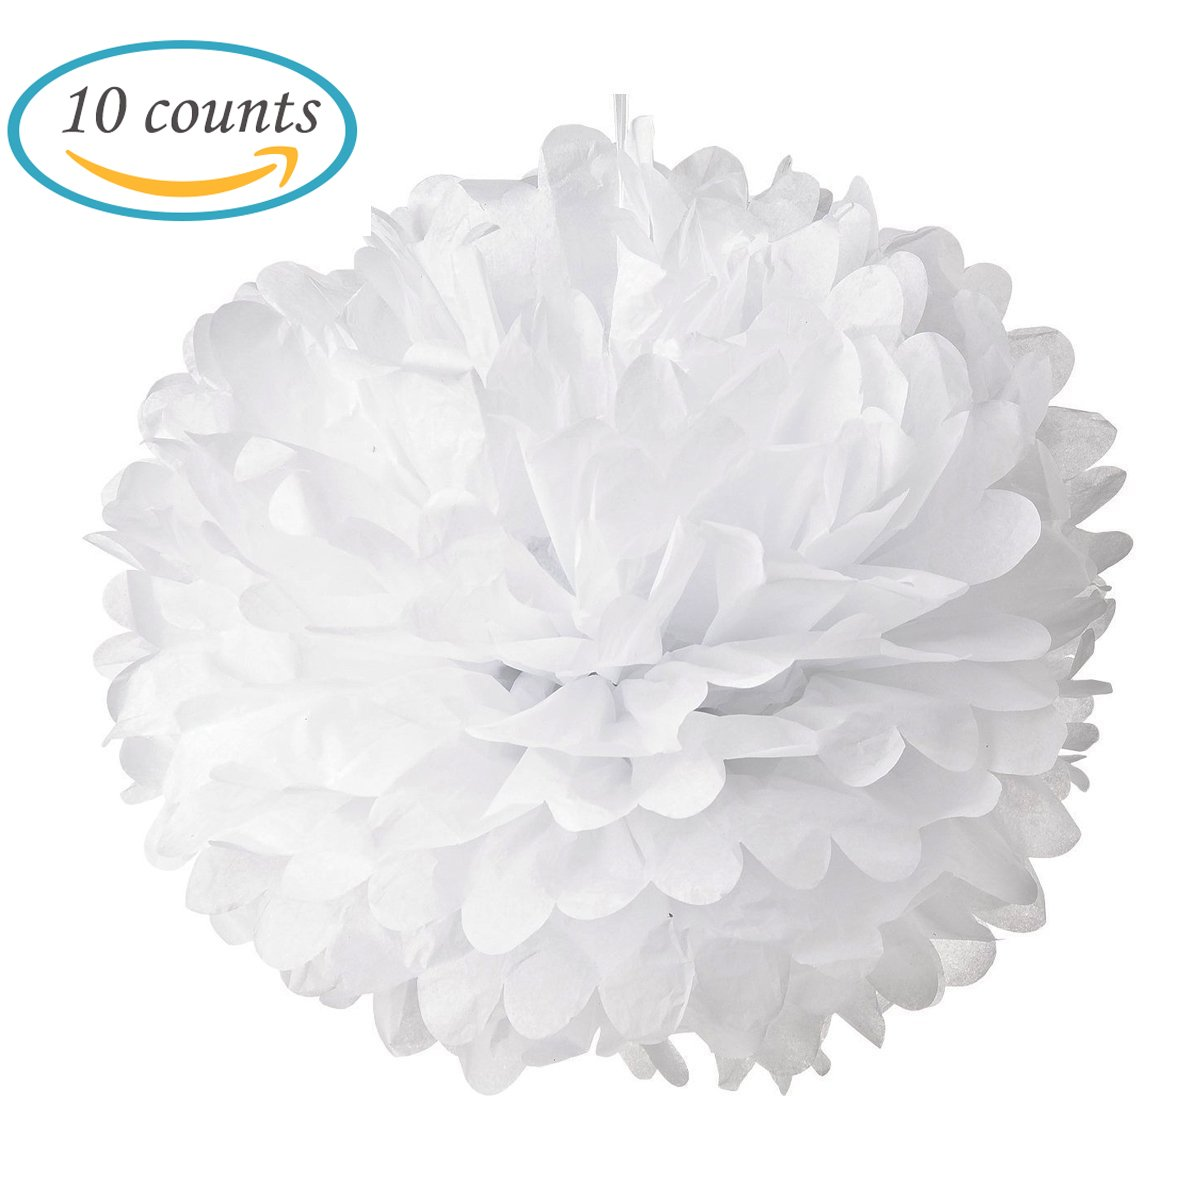 Amazon.com: 10pcs White Tissue Hanging Paper Pom-poms, Hmxpls Flower ...